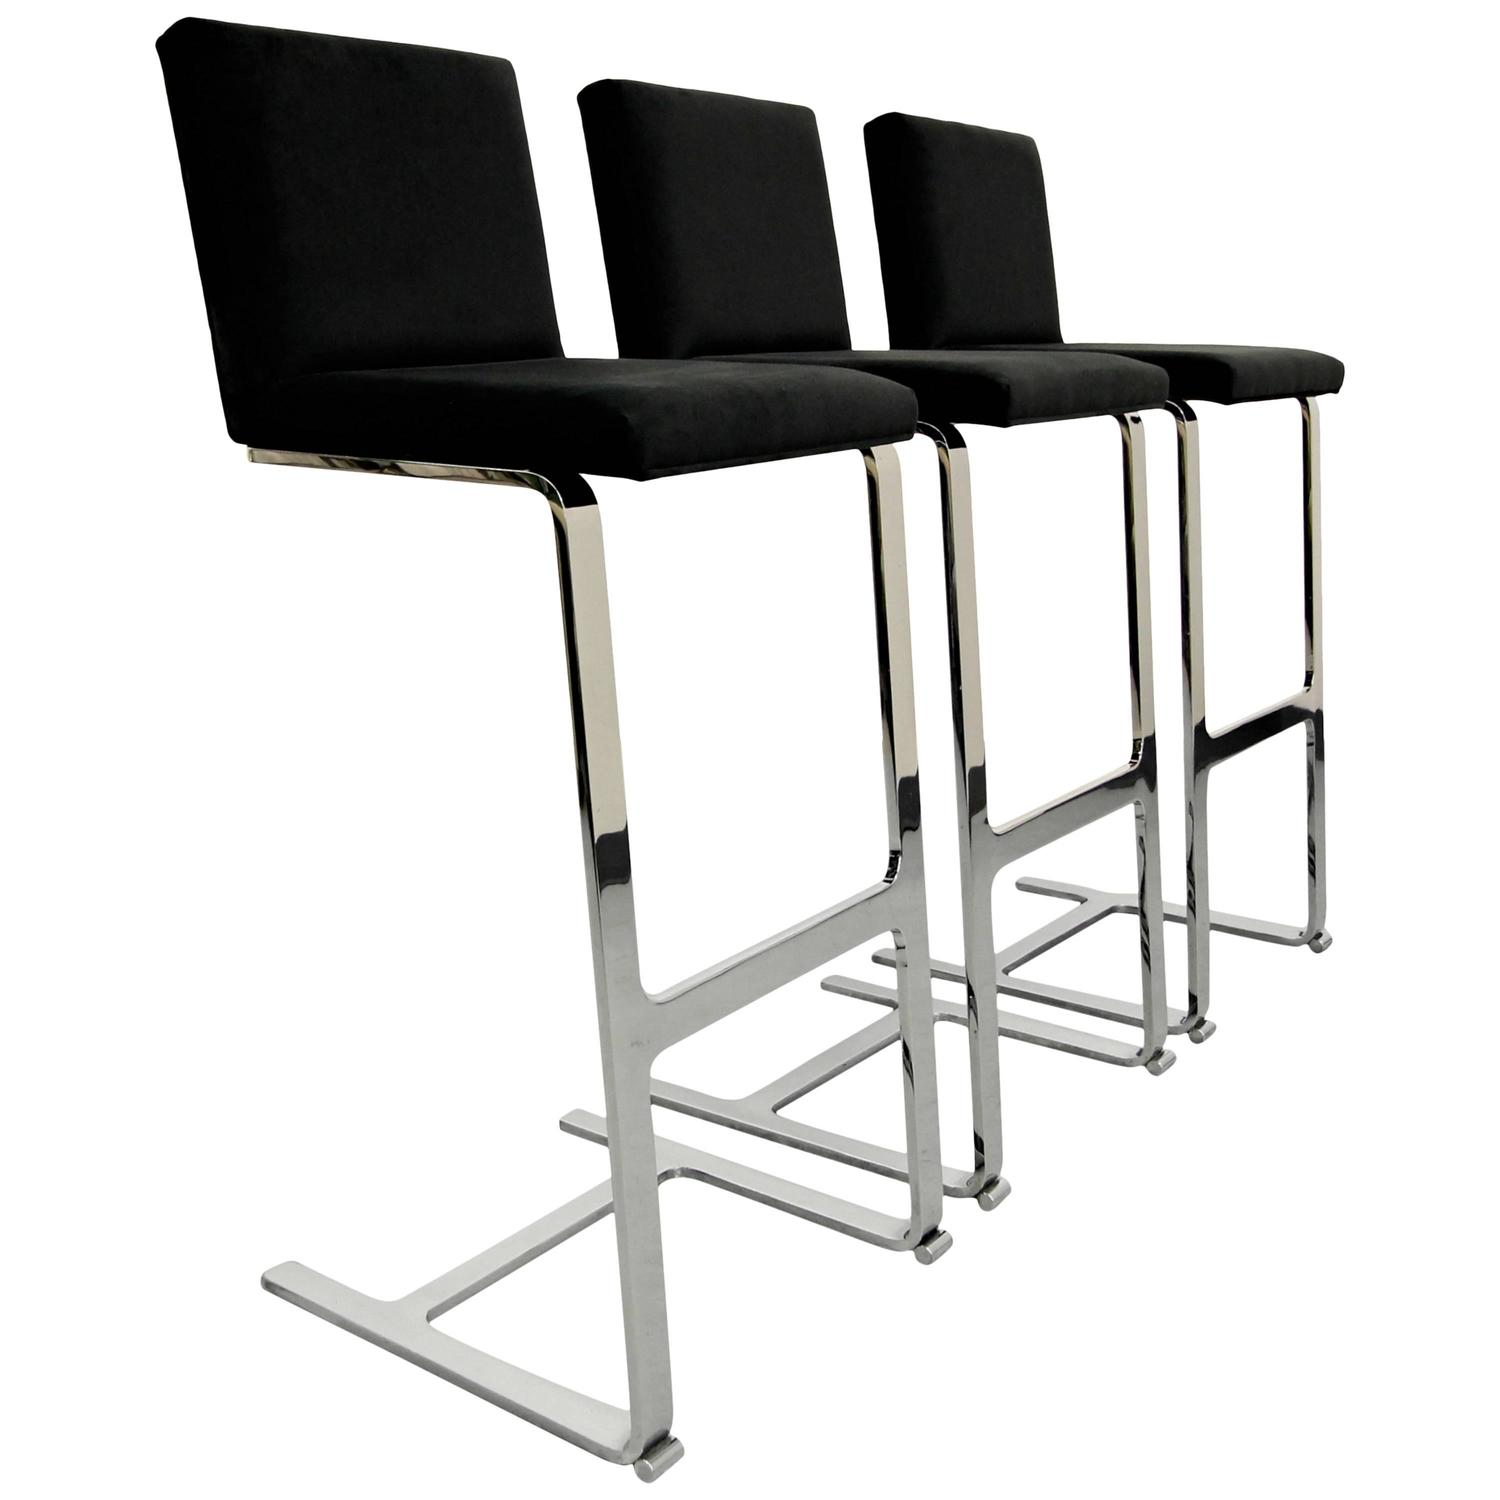 Chrome Counter Height Cantilever Bar Stool For Sale At 1stdibs